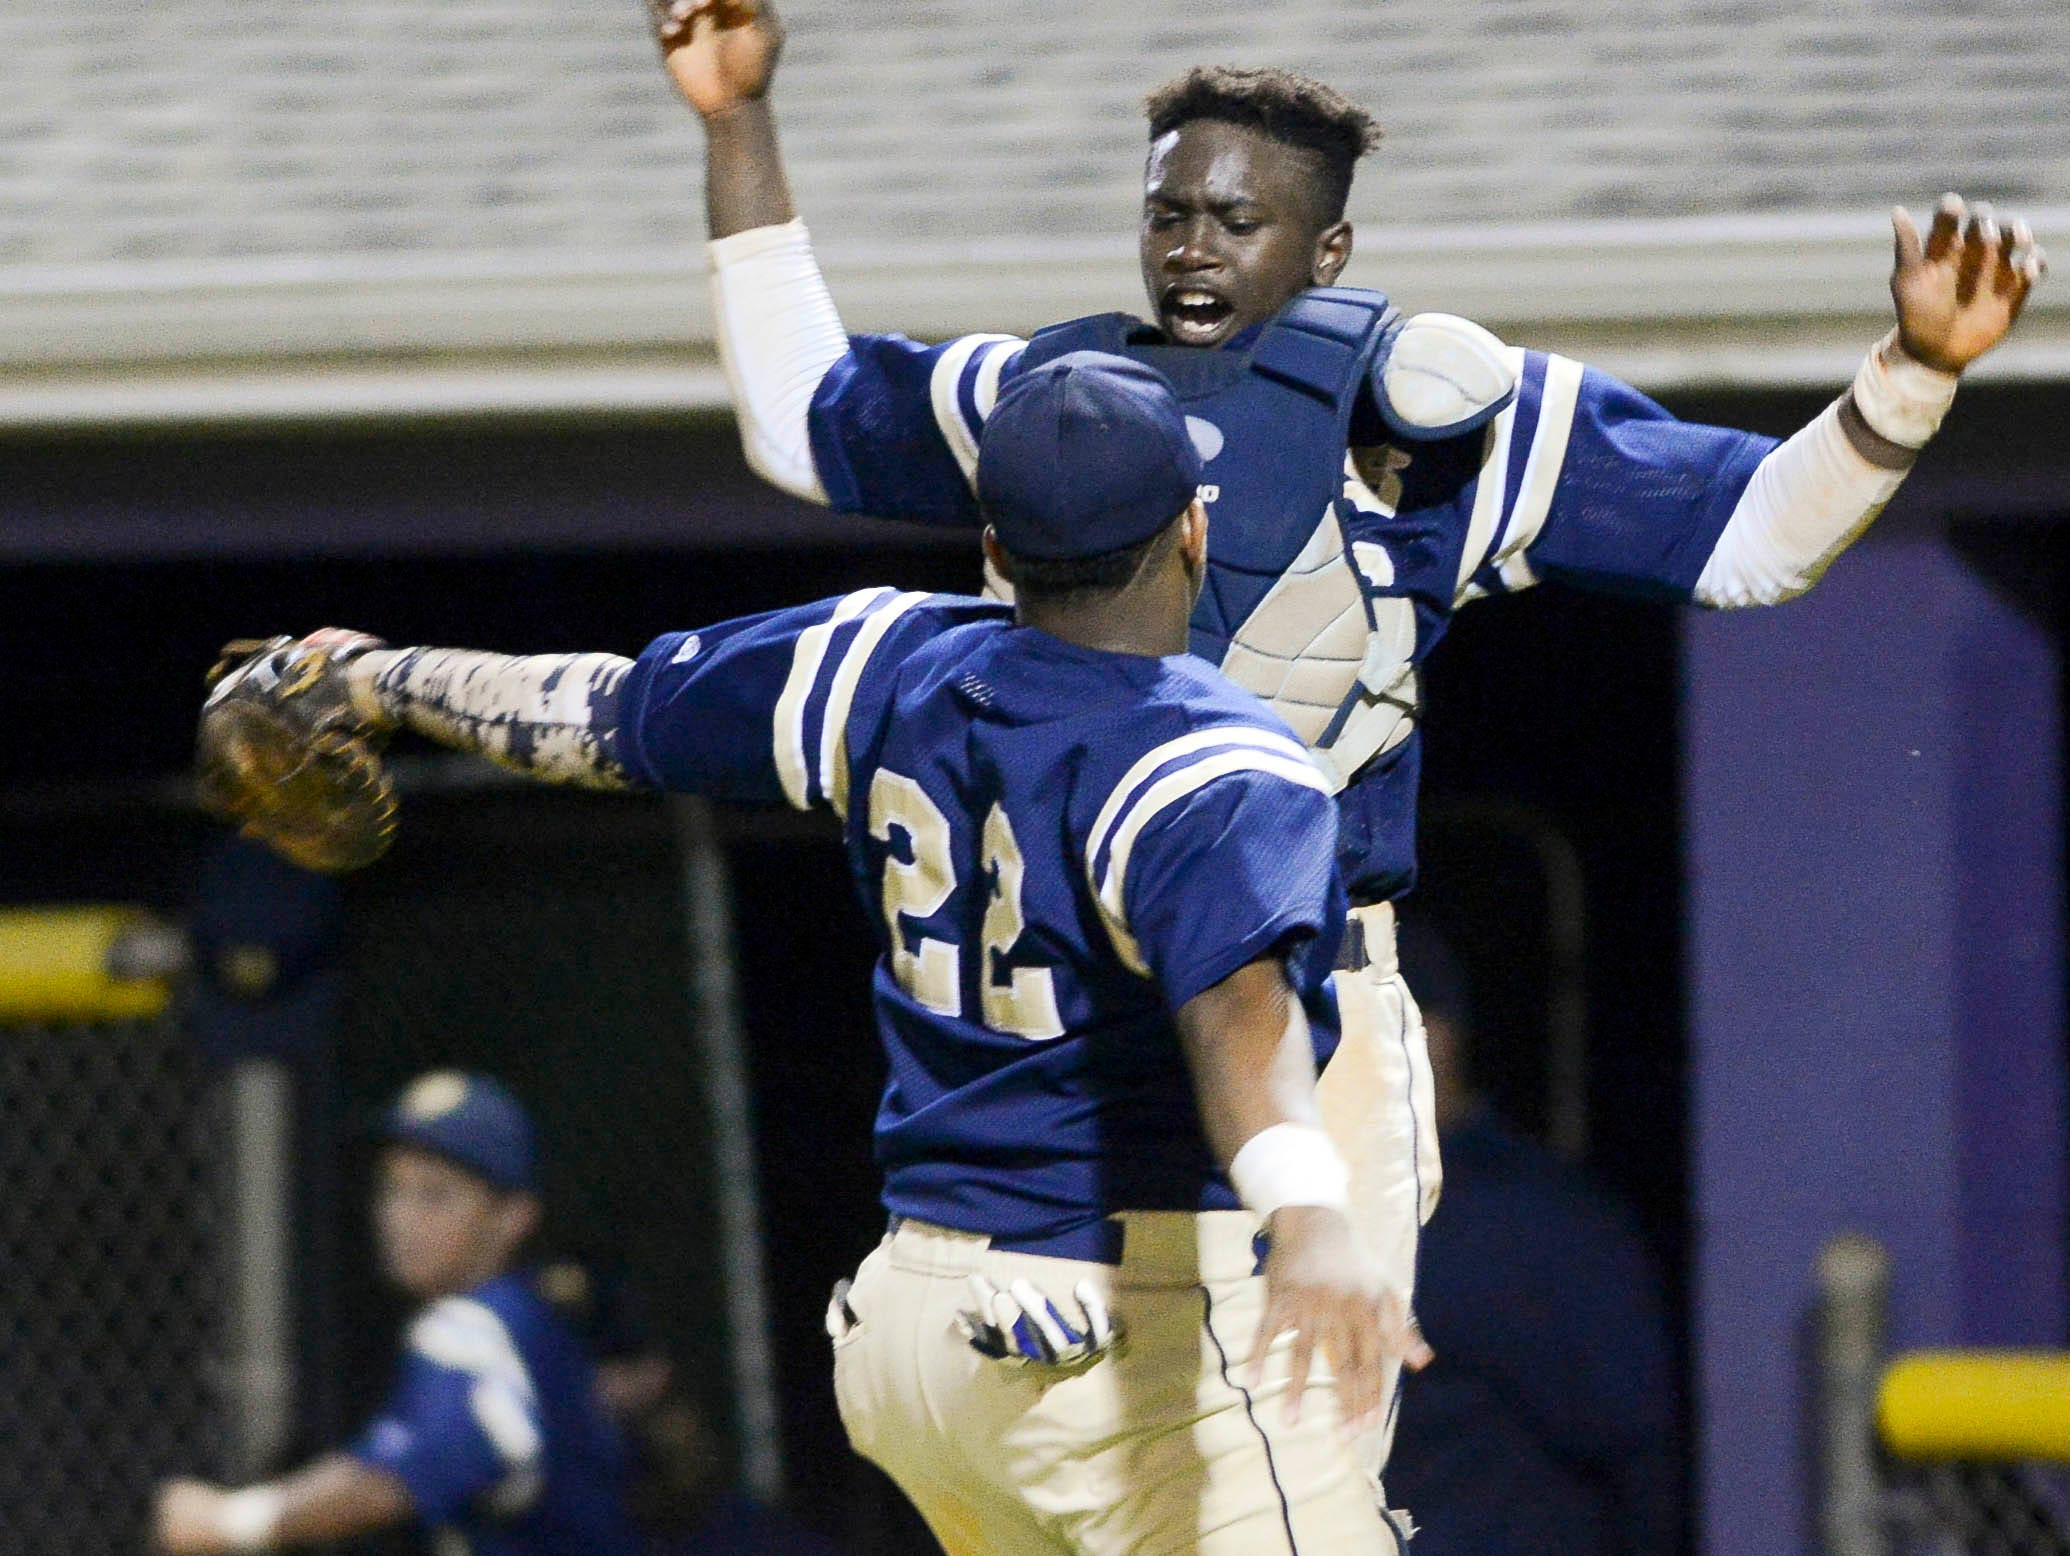 Holy Trinity's Jacquel Perry and Tony Jenkins celebrate a score during Tuesday's district playoff game in Port St. John.